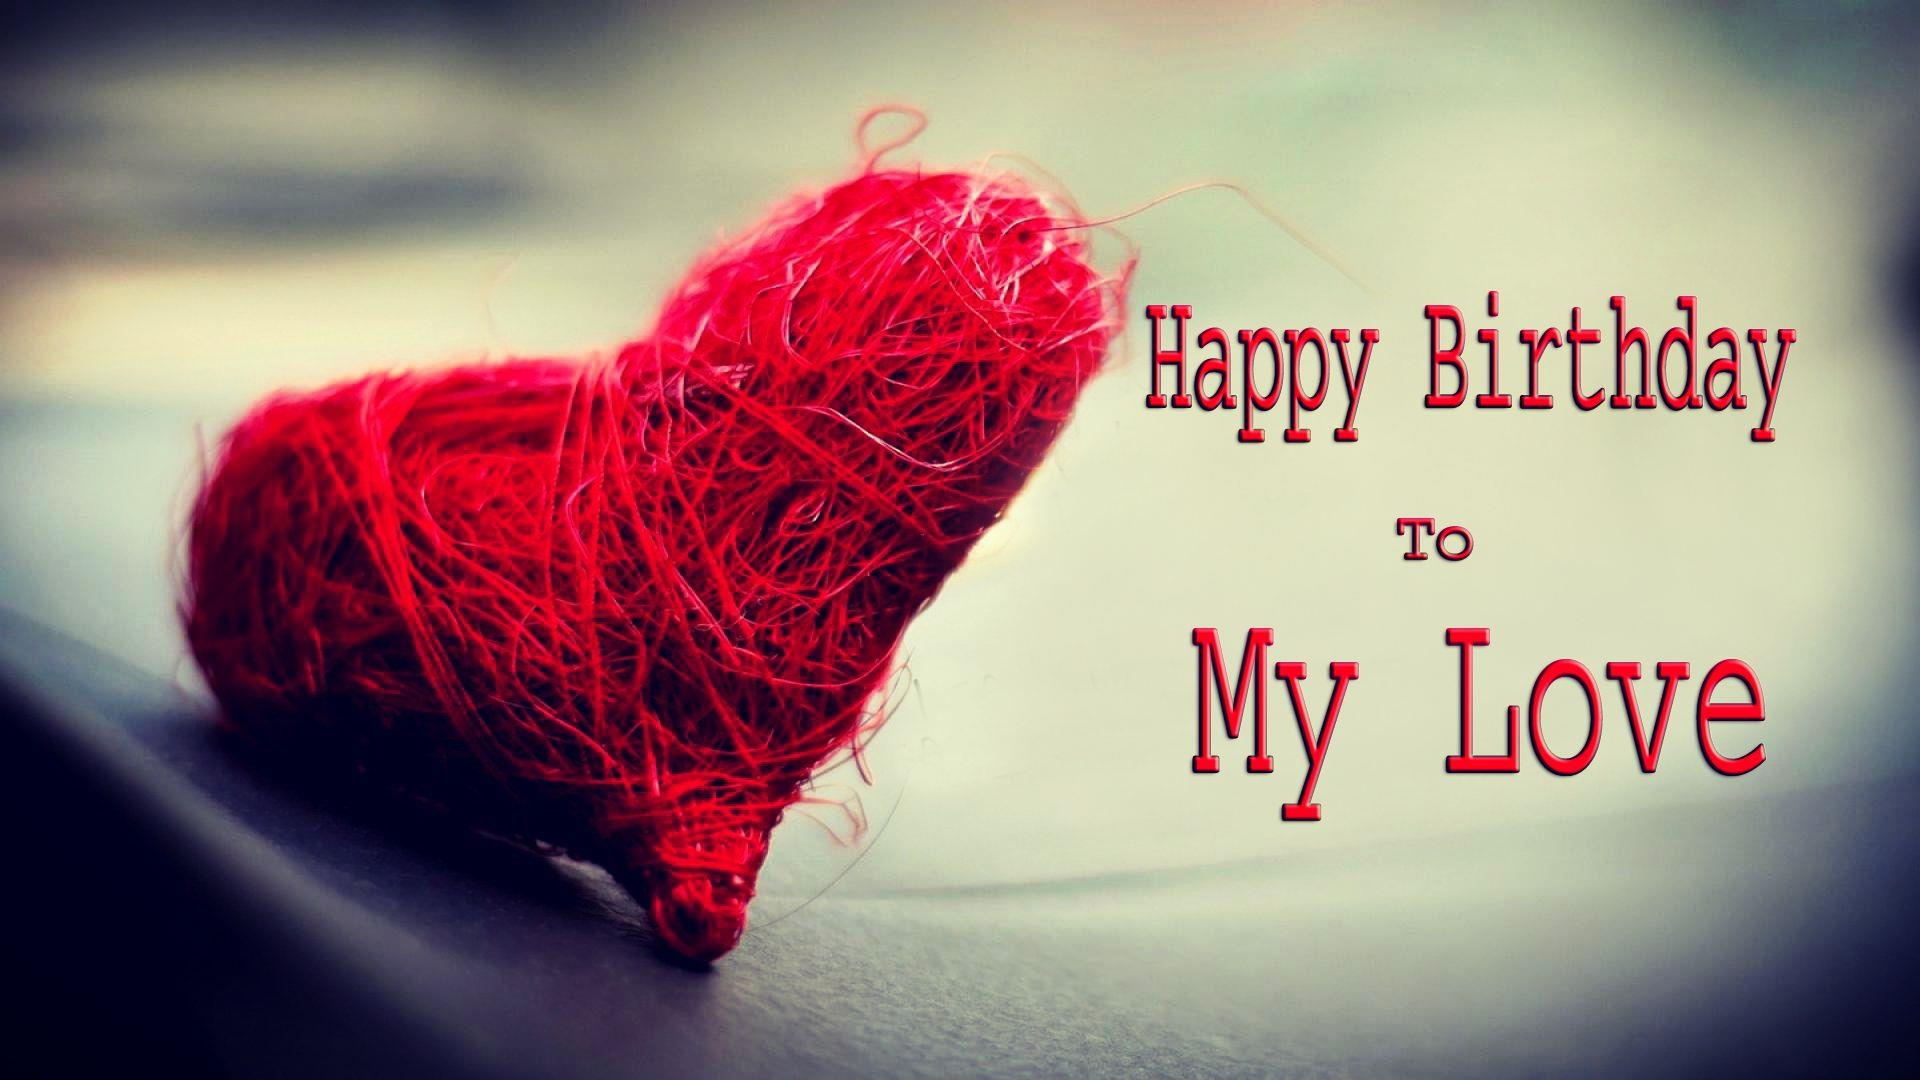 Birthday-photos-images-pictures-for-love-http-greetingspic-blogspot-com-birt-wallpaper-wp3403257